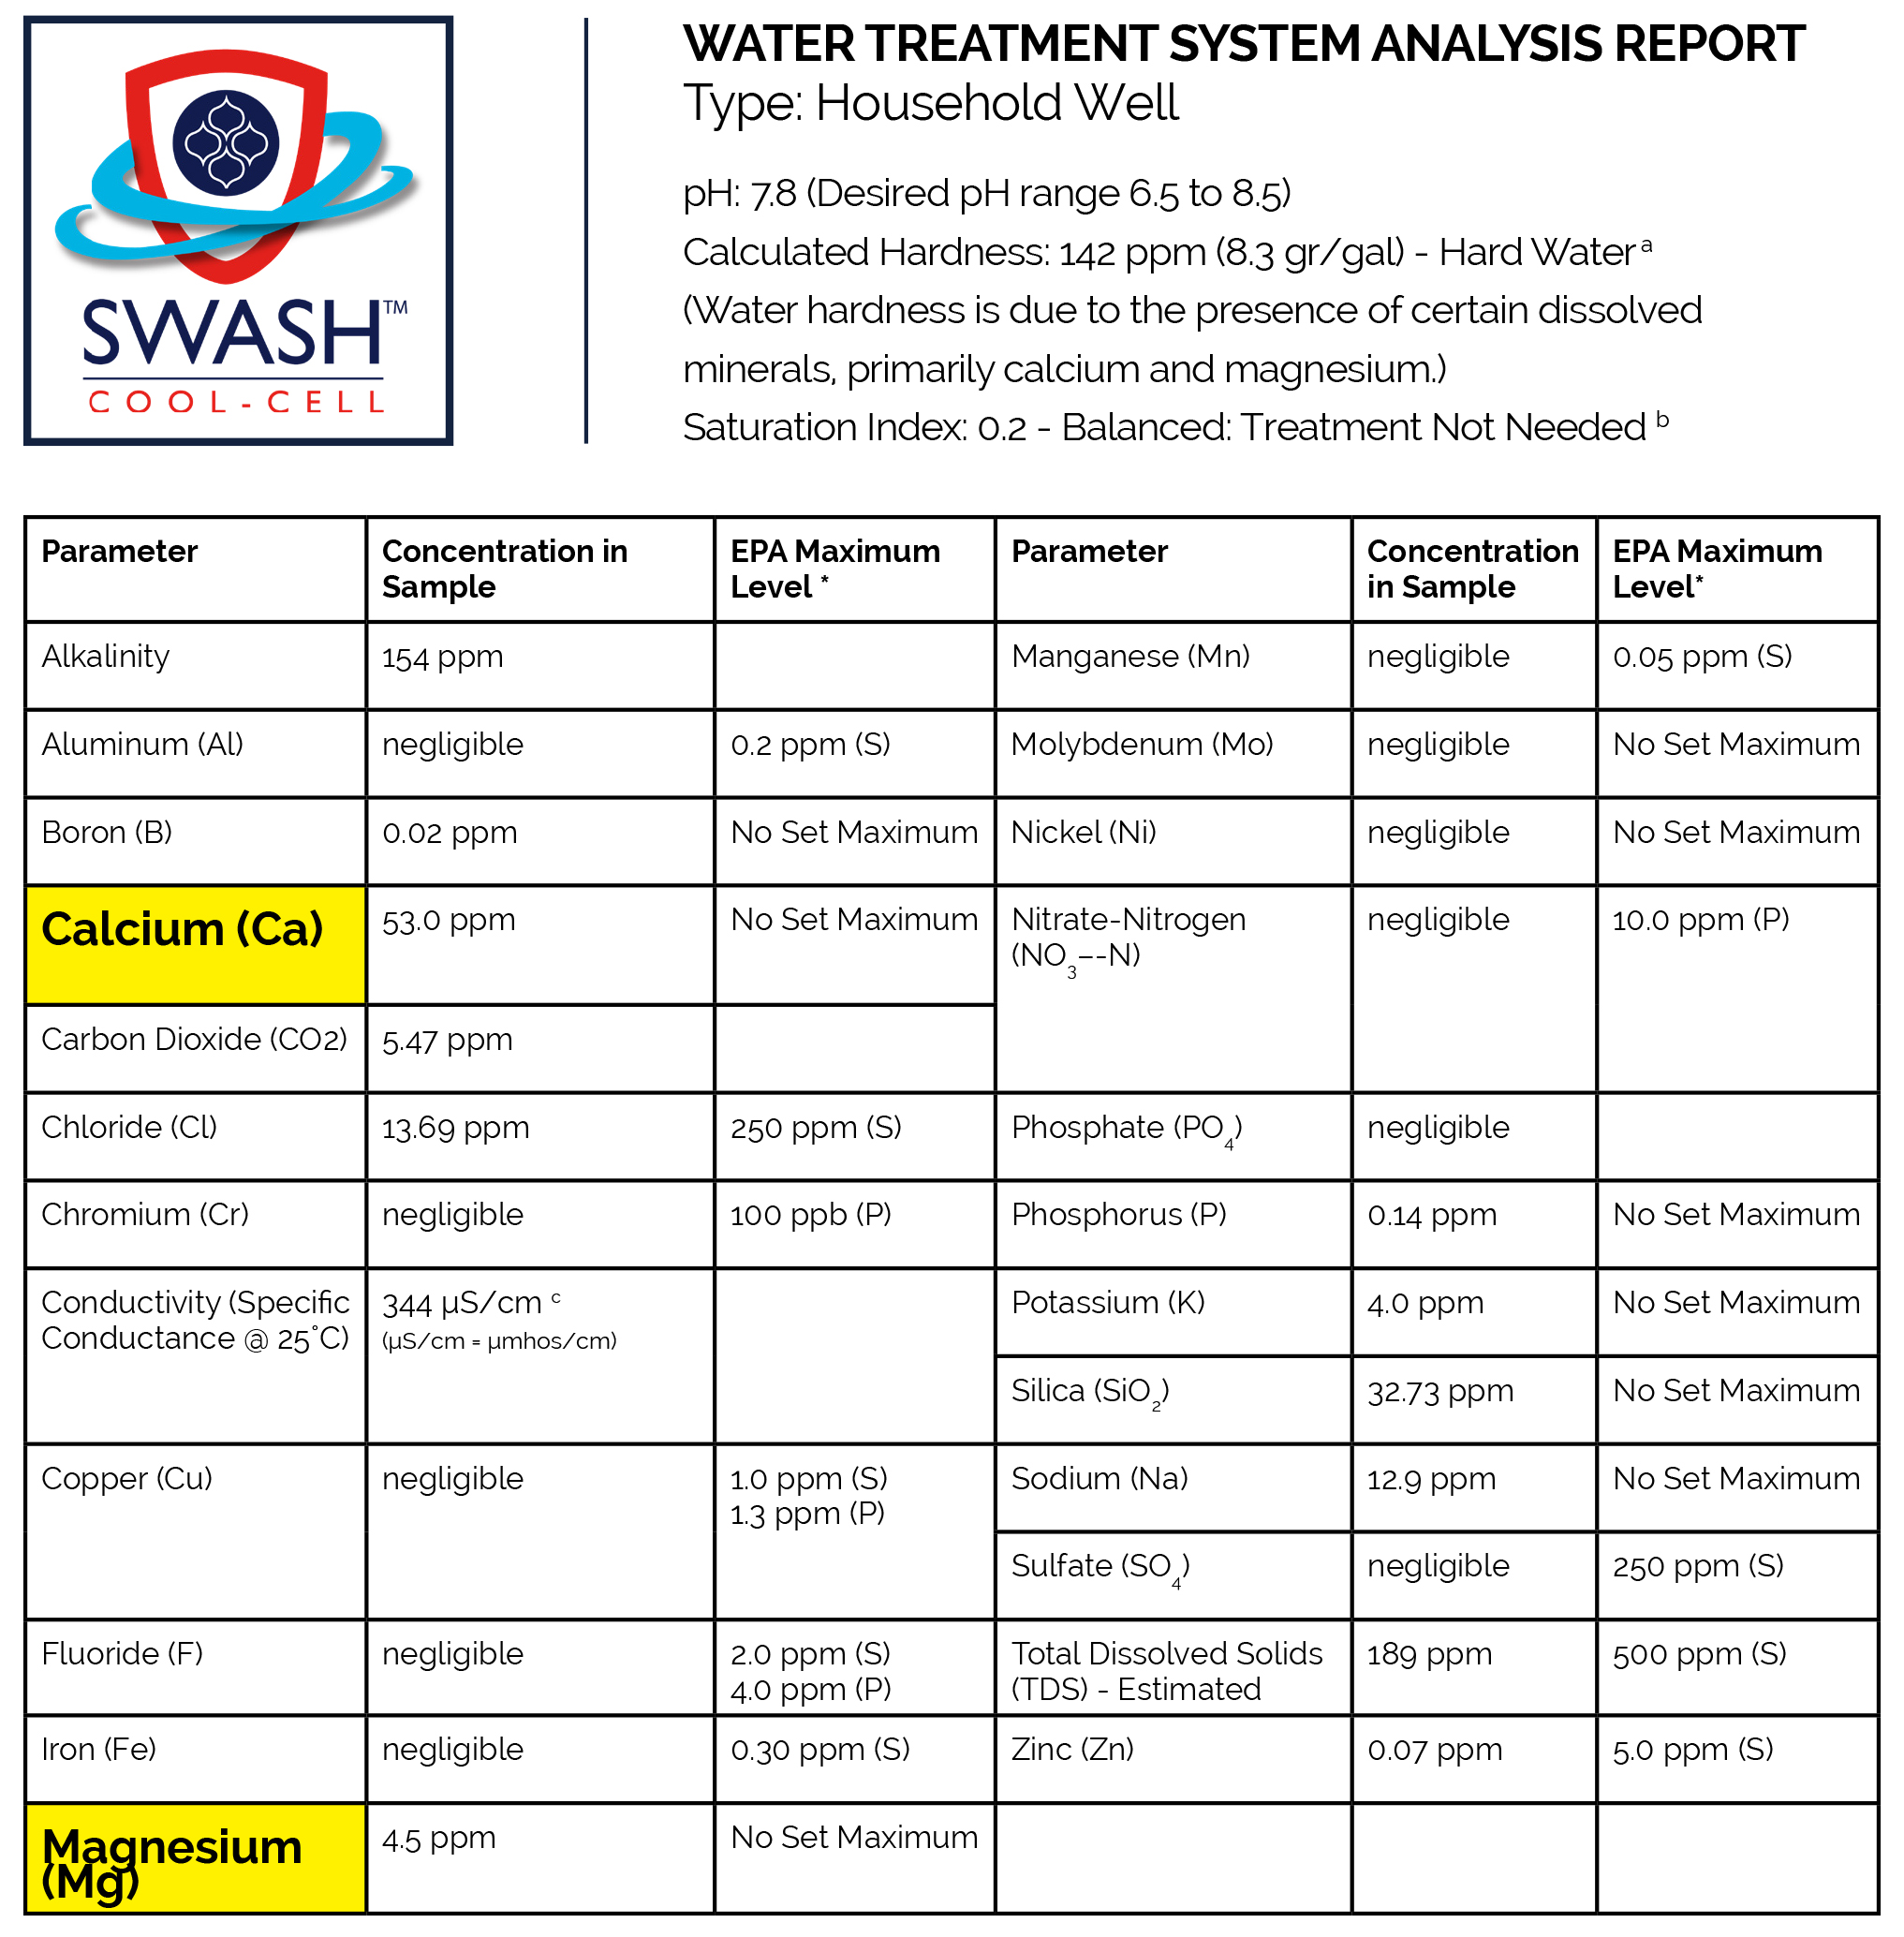 WATER TREATMENT SYSTEM ANALYSIS REPORT BLOG